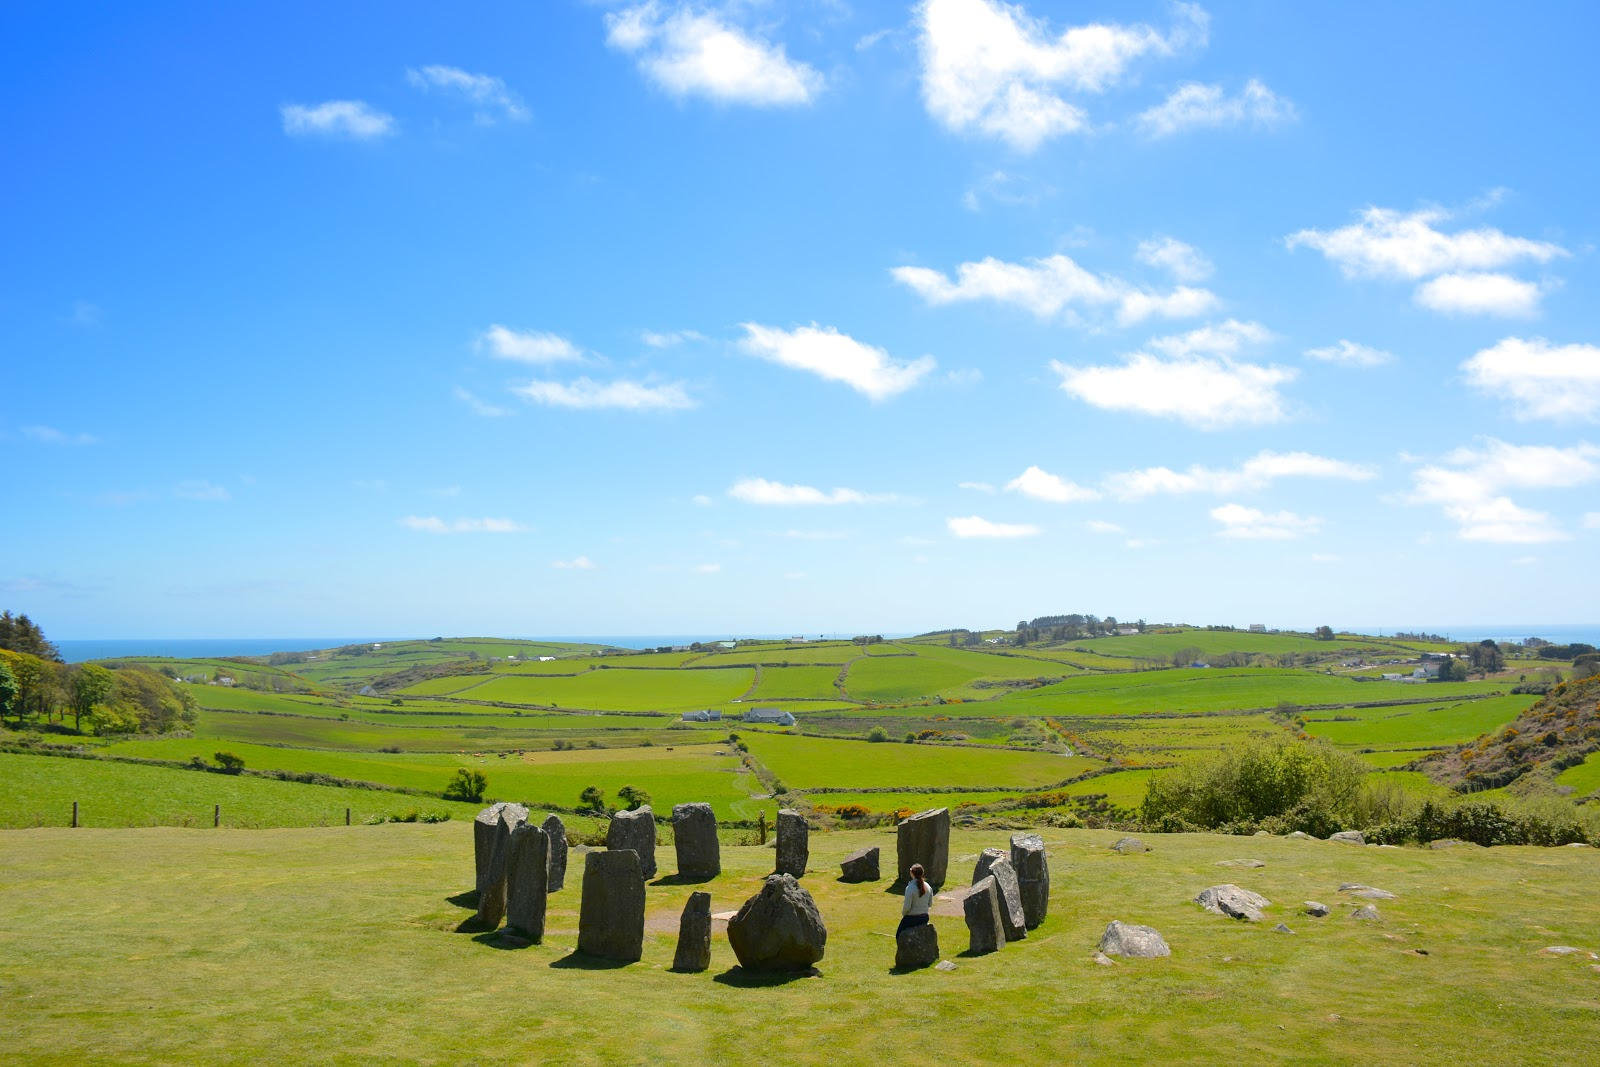 Drombeg Stone Circle in County Cork, Ireland